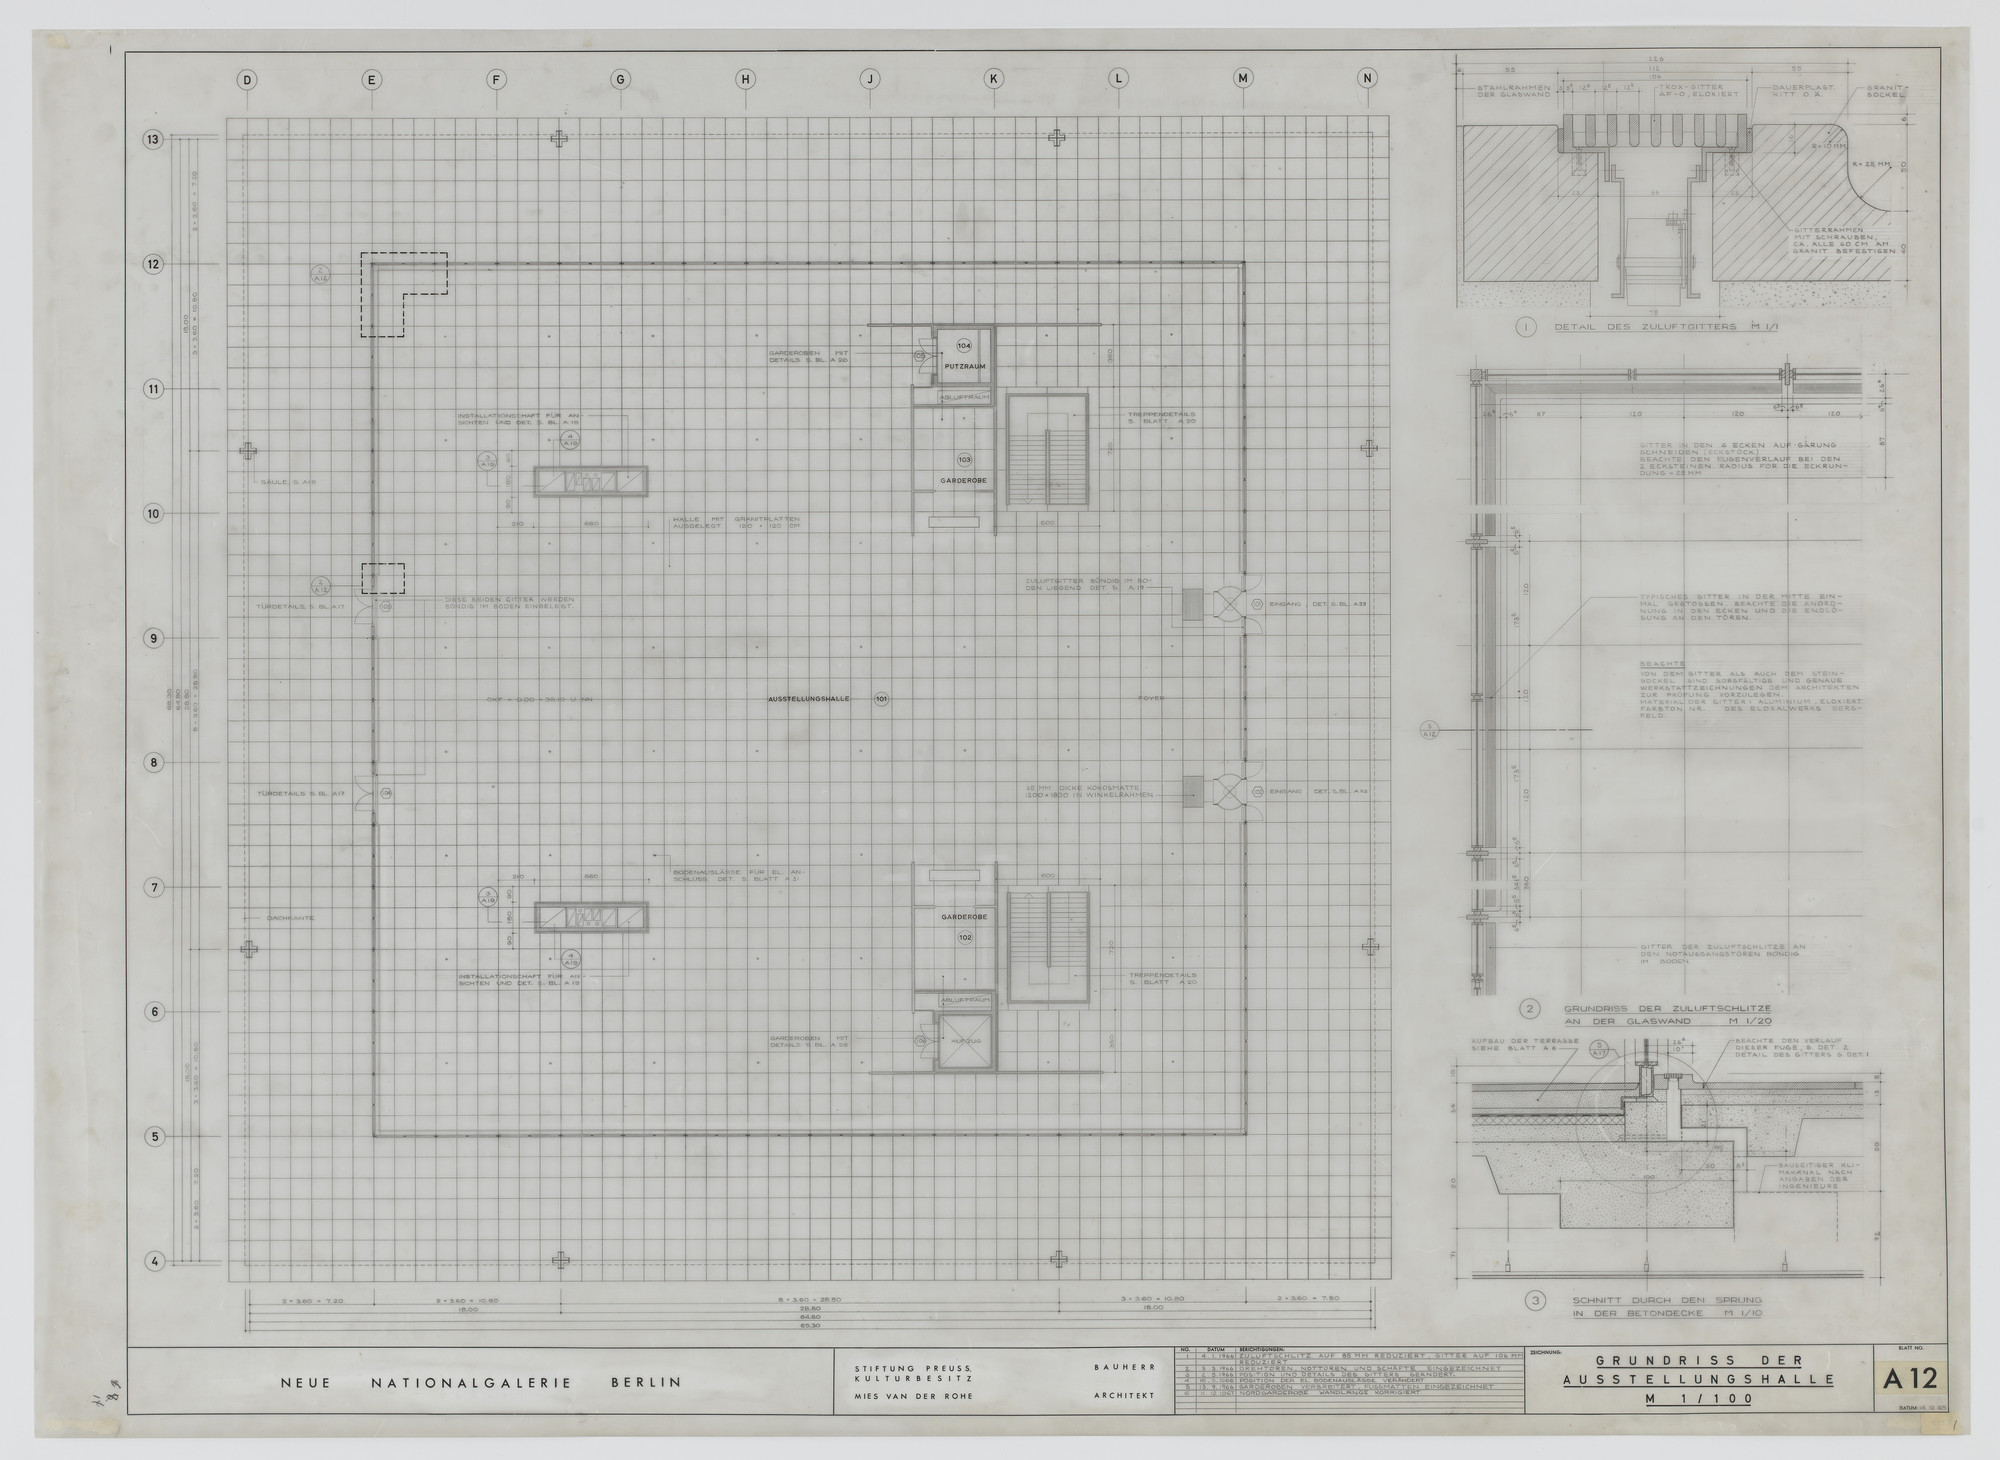 Ludwig Mies van der Rohe. New National Gallery, Berlin, Germany (Floor plan of exhibition hall). 1967